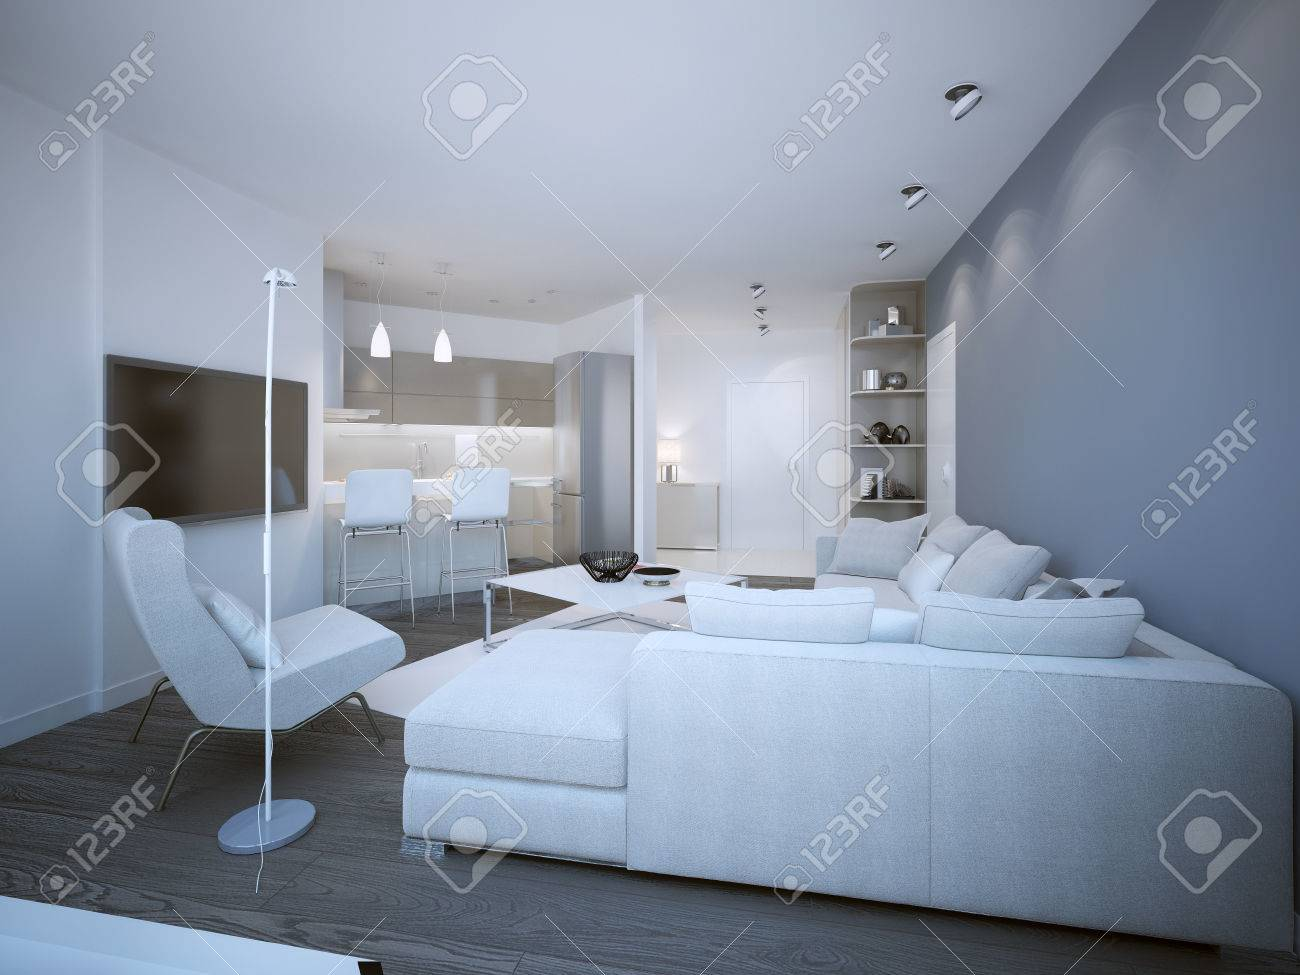 Lounge Room Techno Style With Small Kitchen. 3D Render Stock Photo ...